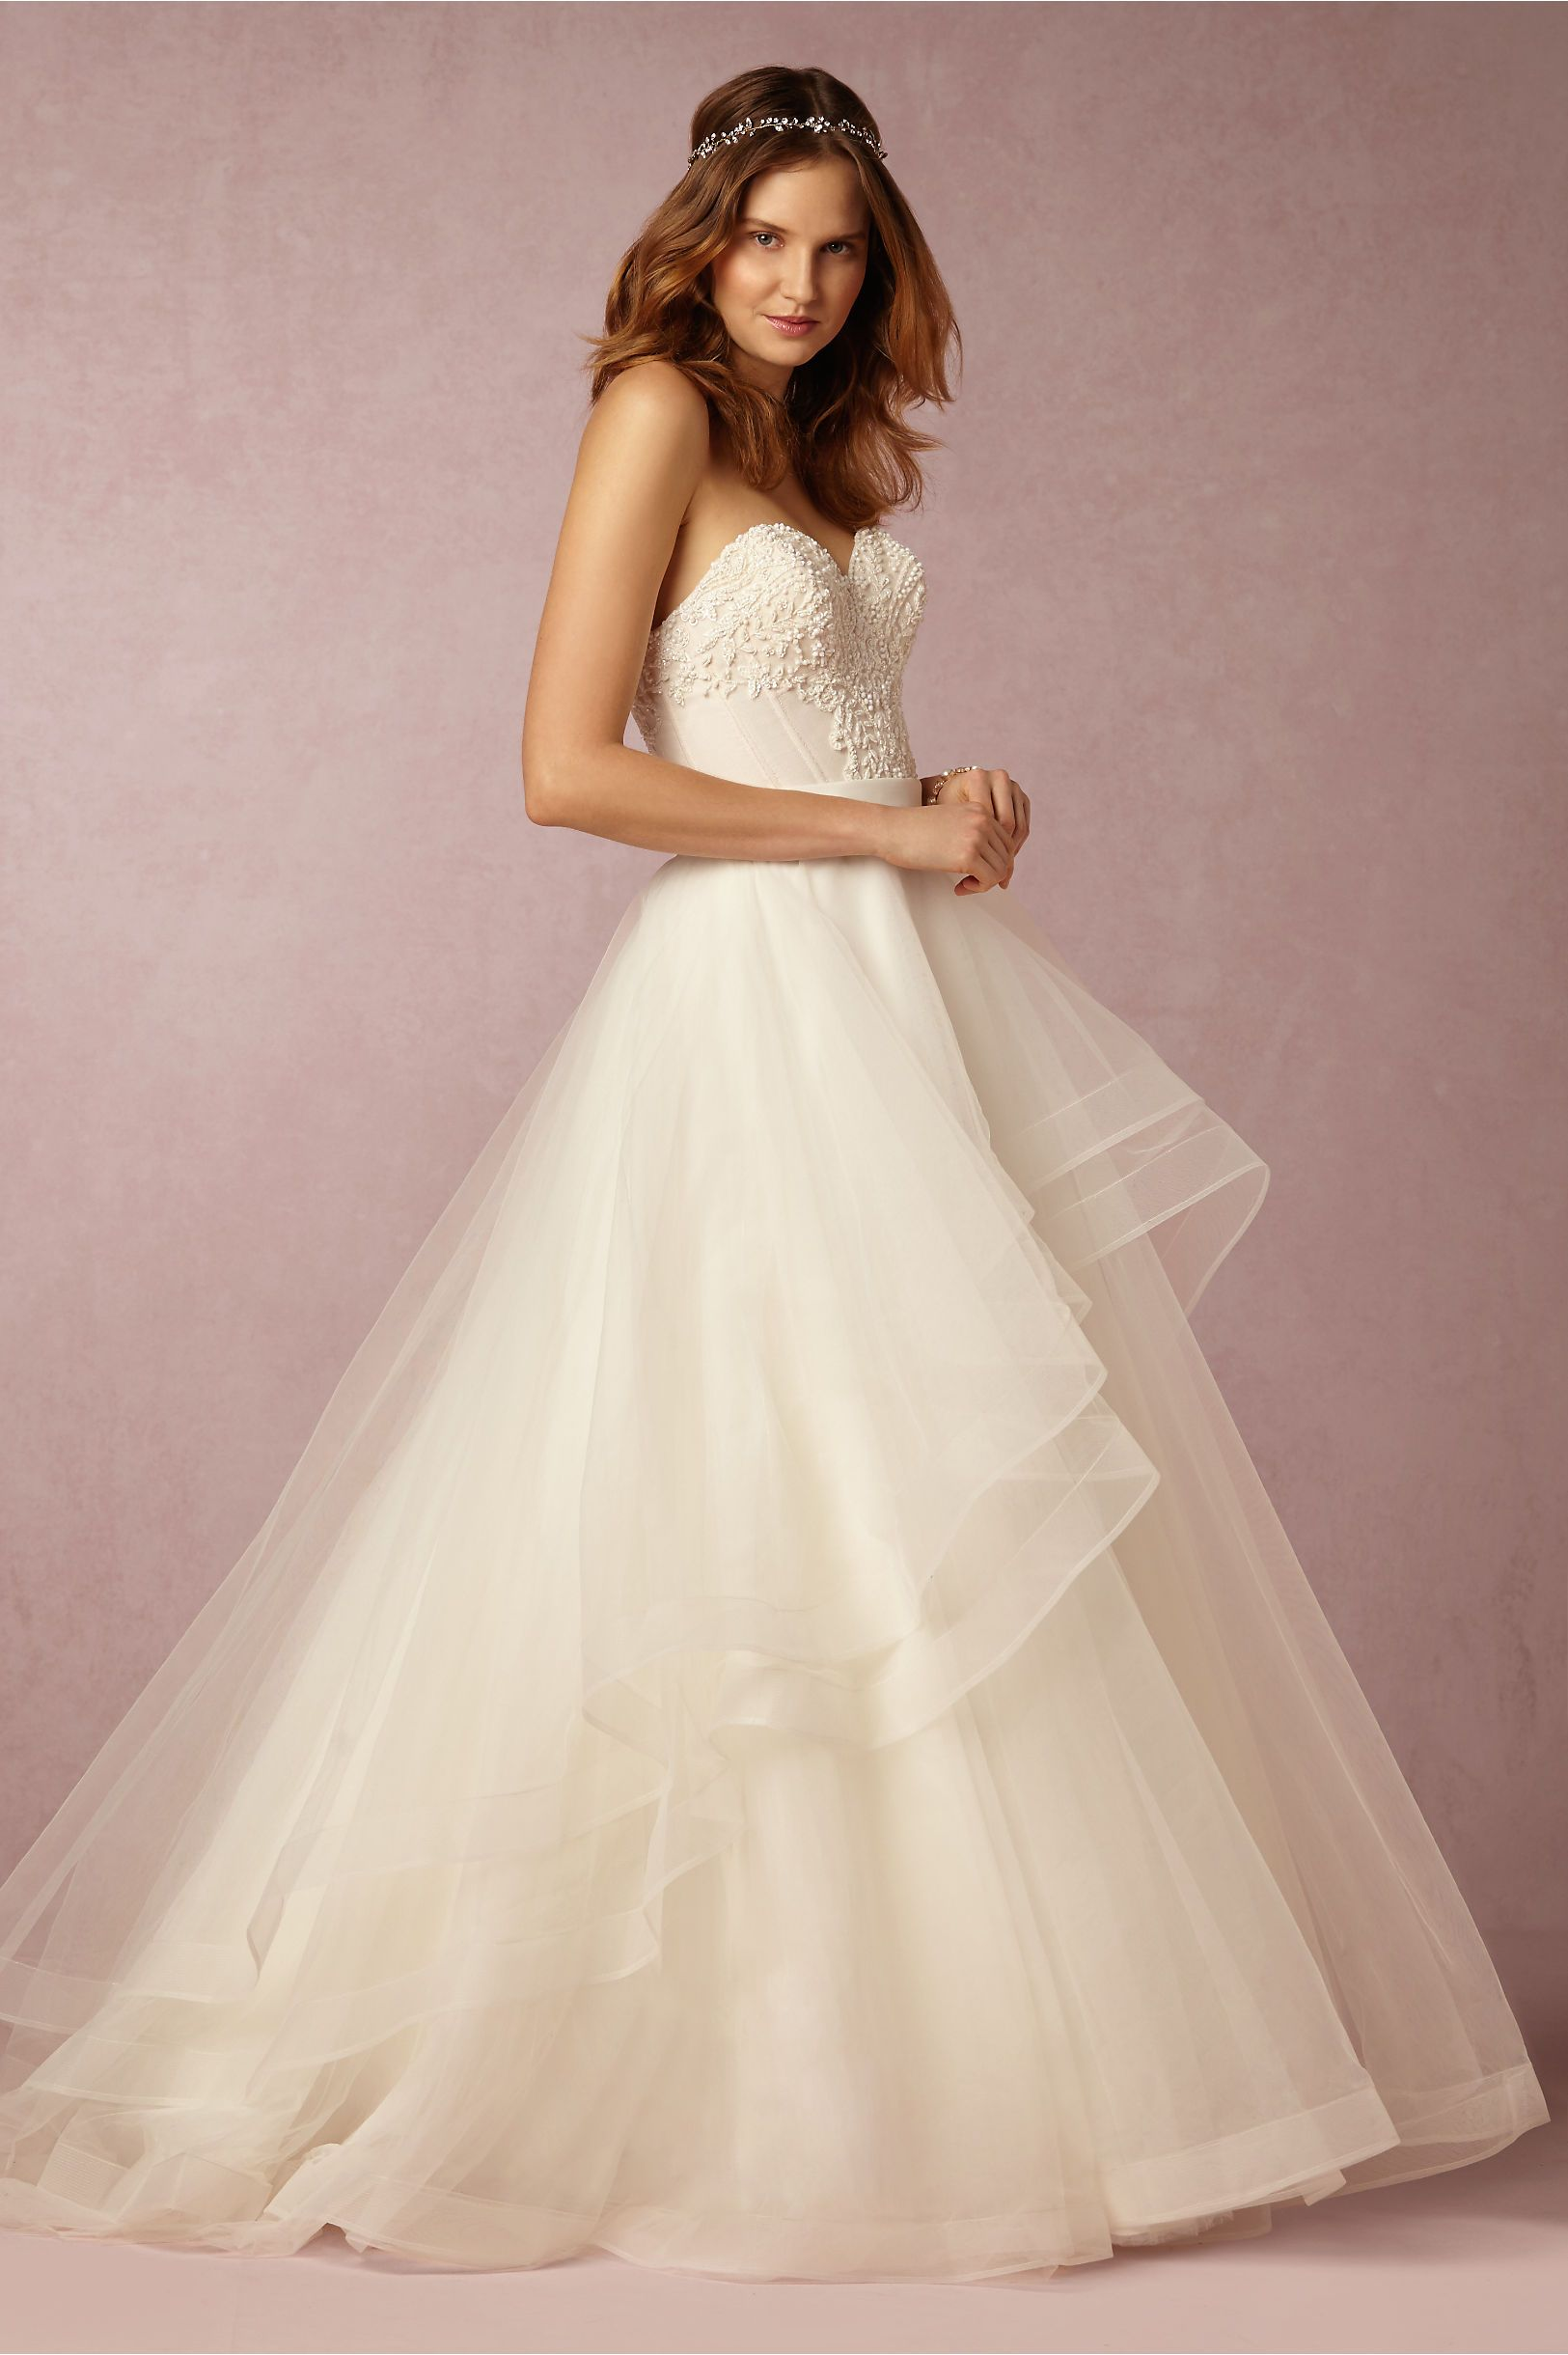 This is two pieces (Tisha Corset & Almira Skirt) together from BHLDN ...